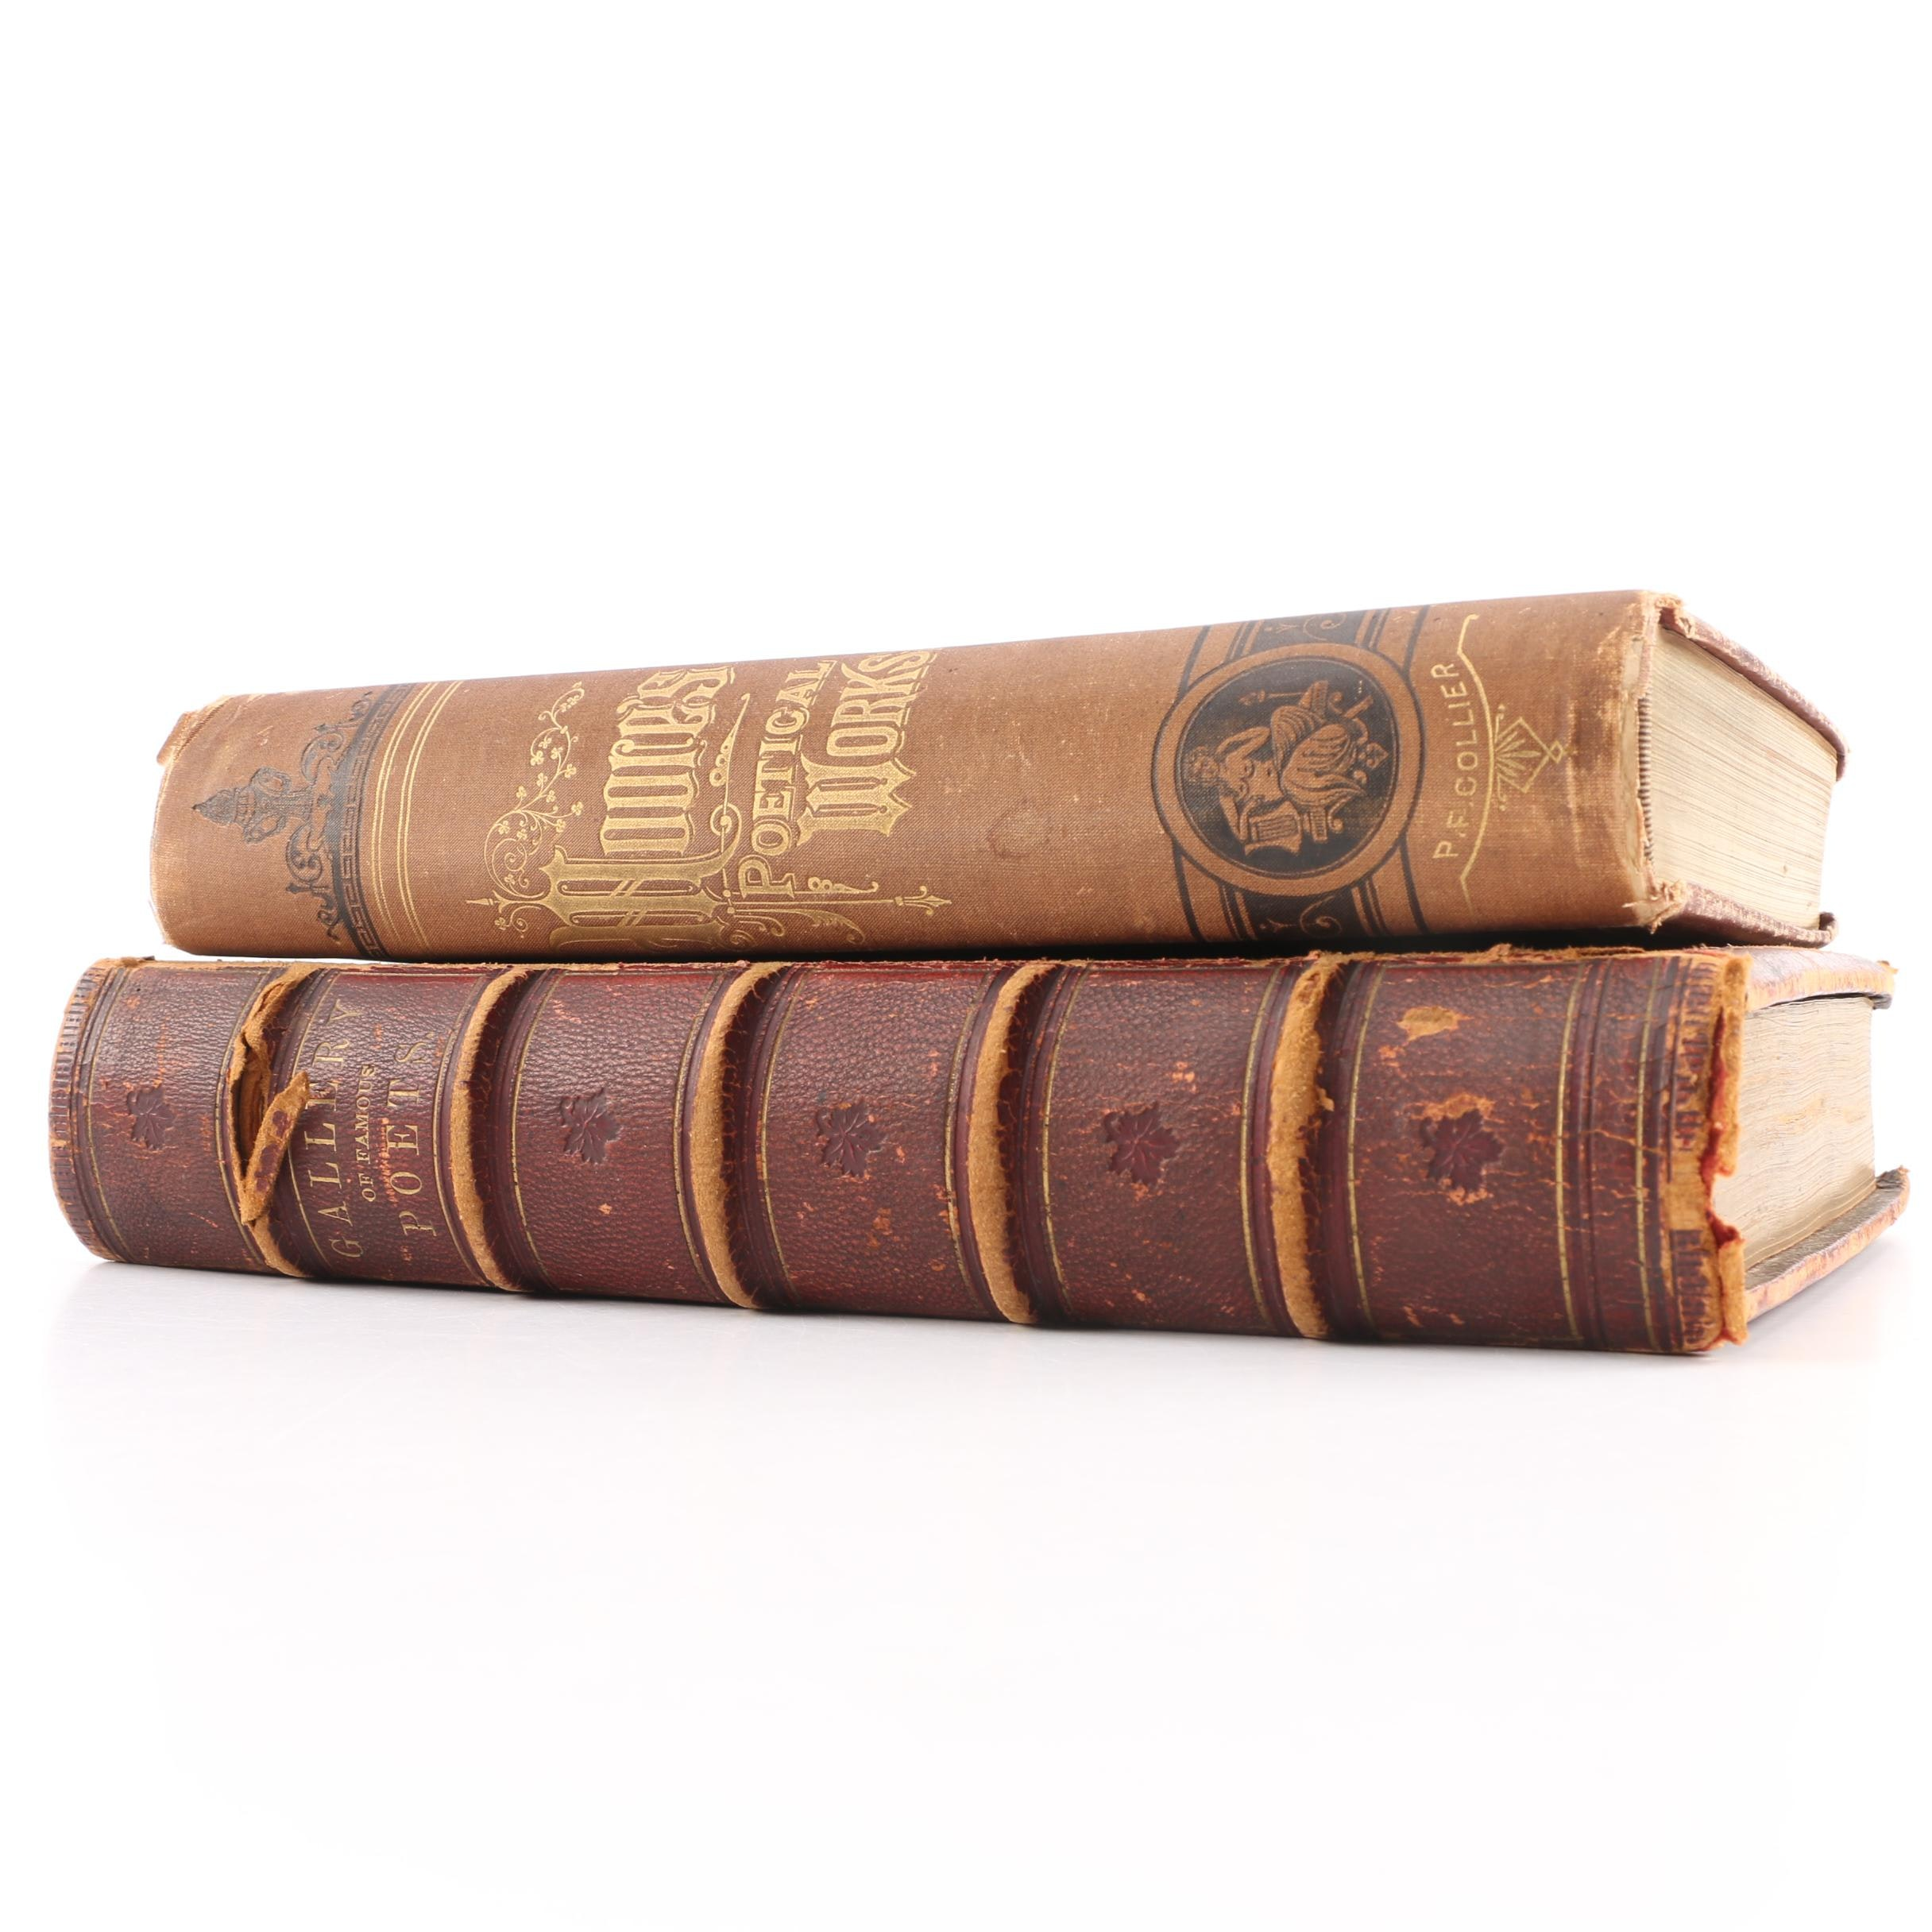 Antique Leather Bound Poetry Books